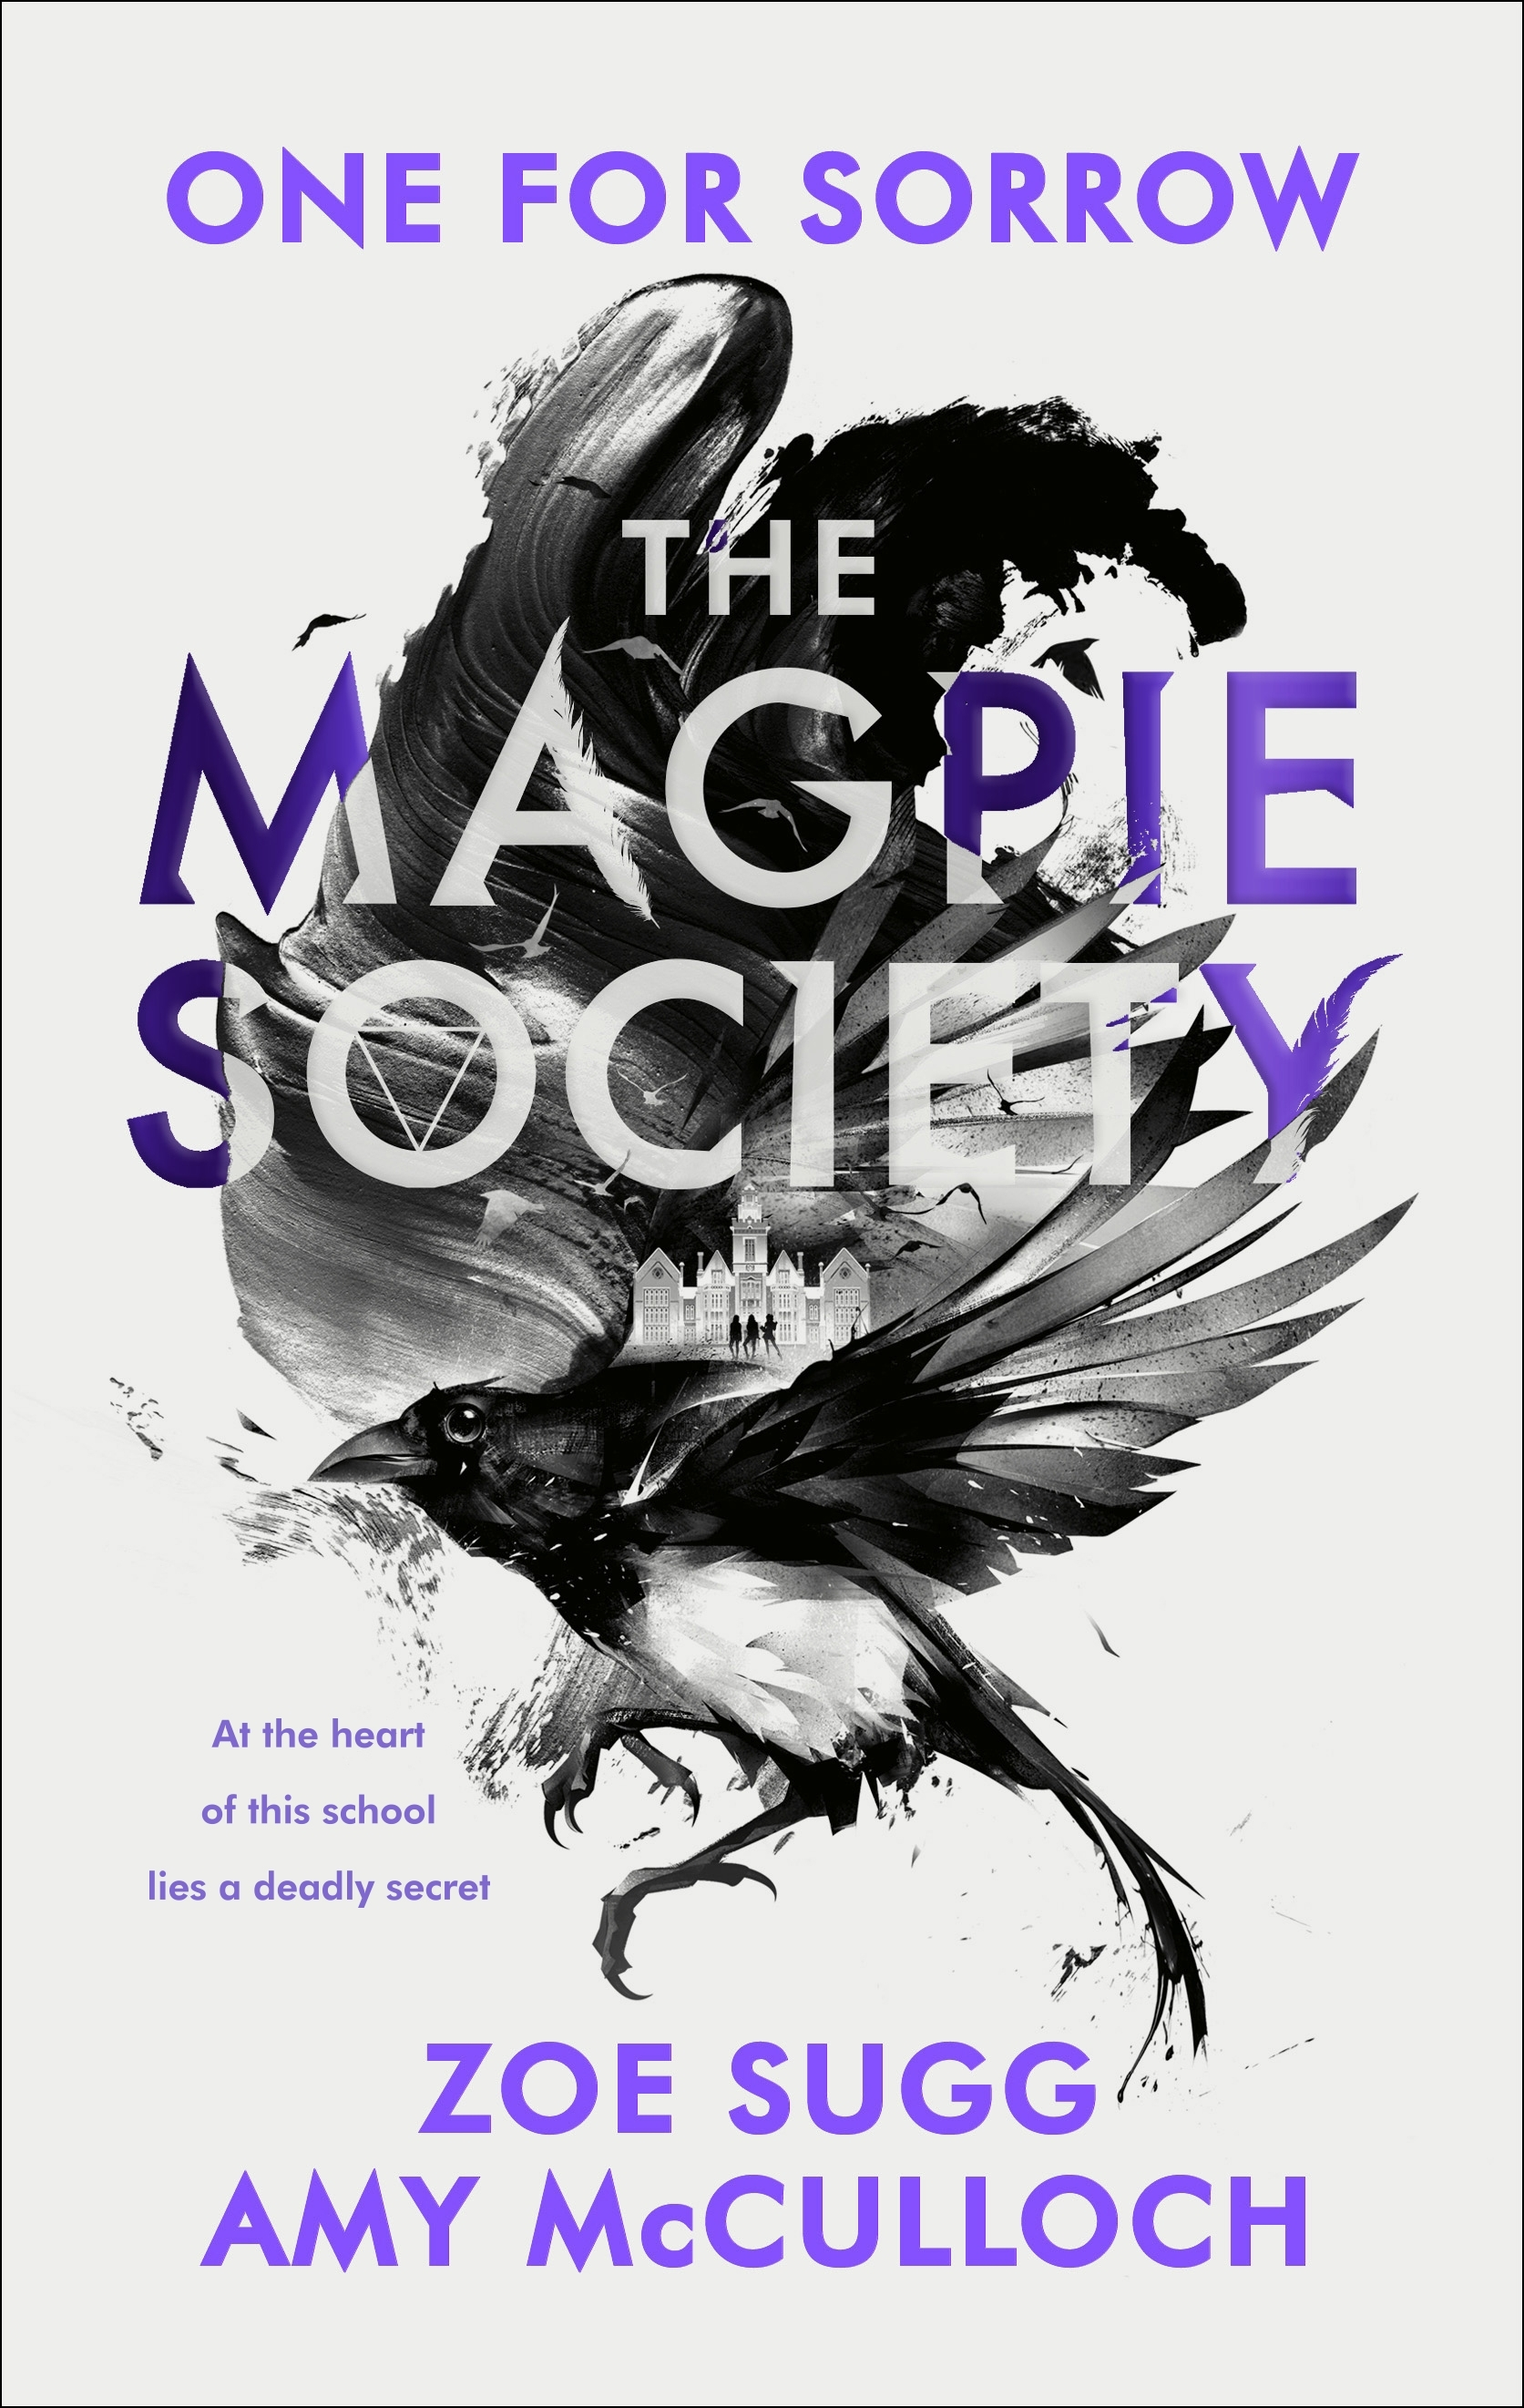 The Magpie Society: One for Sorrow by Amy McCulloch, Zoe Sugg